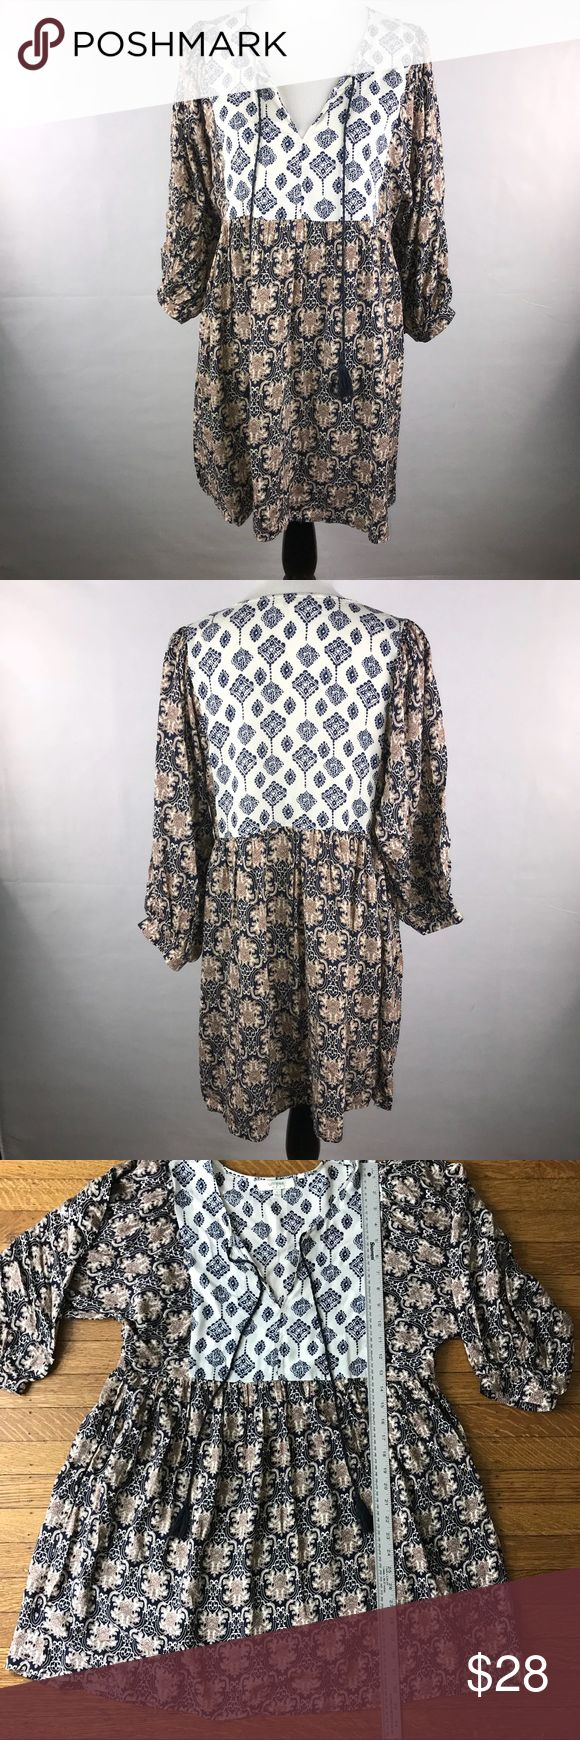 Umgee size large bohemian pattern tunic dress Really cute bohemian tunic dress by Umgee in a size large. Tassels can be tied for a more conservative look.   Festival ready outfit in a more neutral boho color palette  Size large but does look good oversized (it is NOT pinned on the mannequin) See photographs for measurements — no flaws were noted. Umgee Dresses Mini